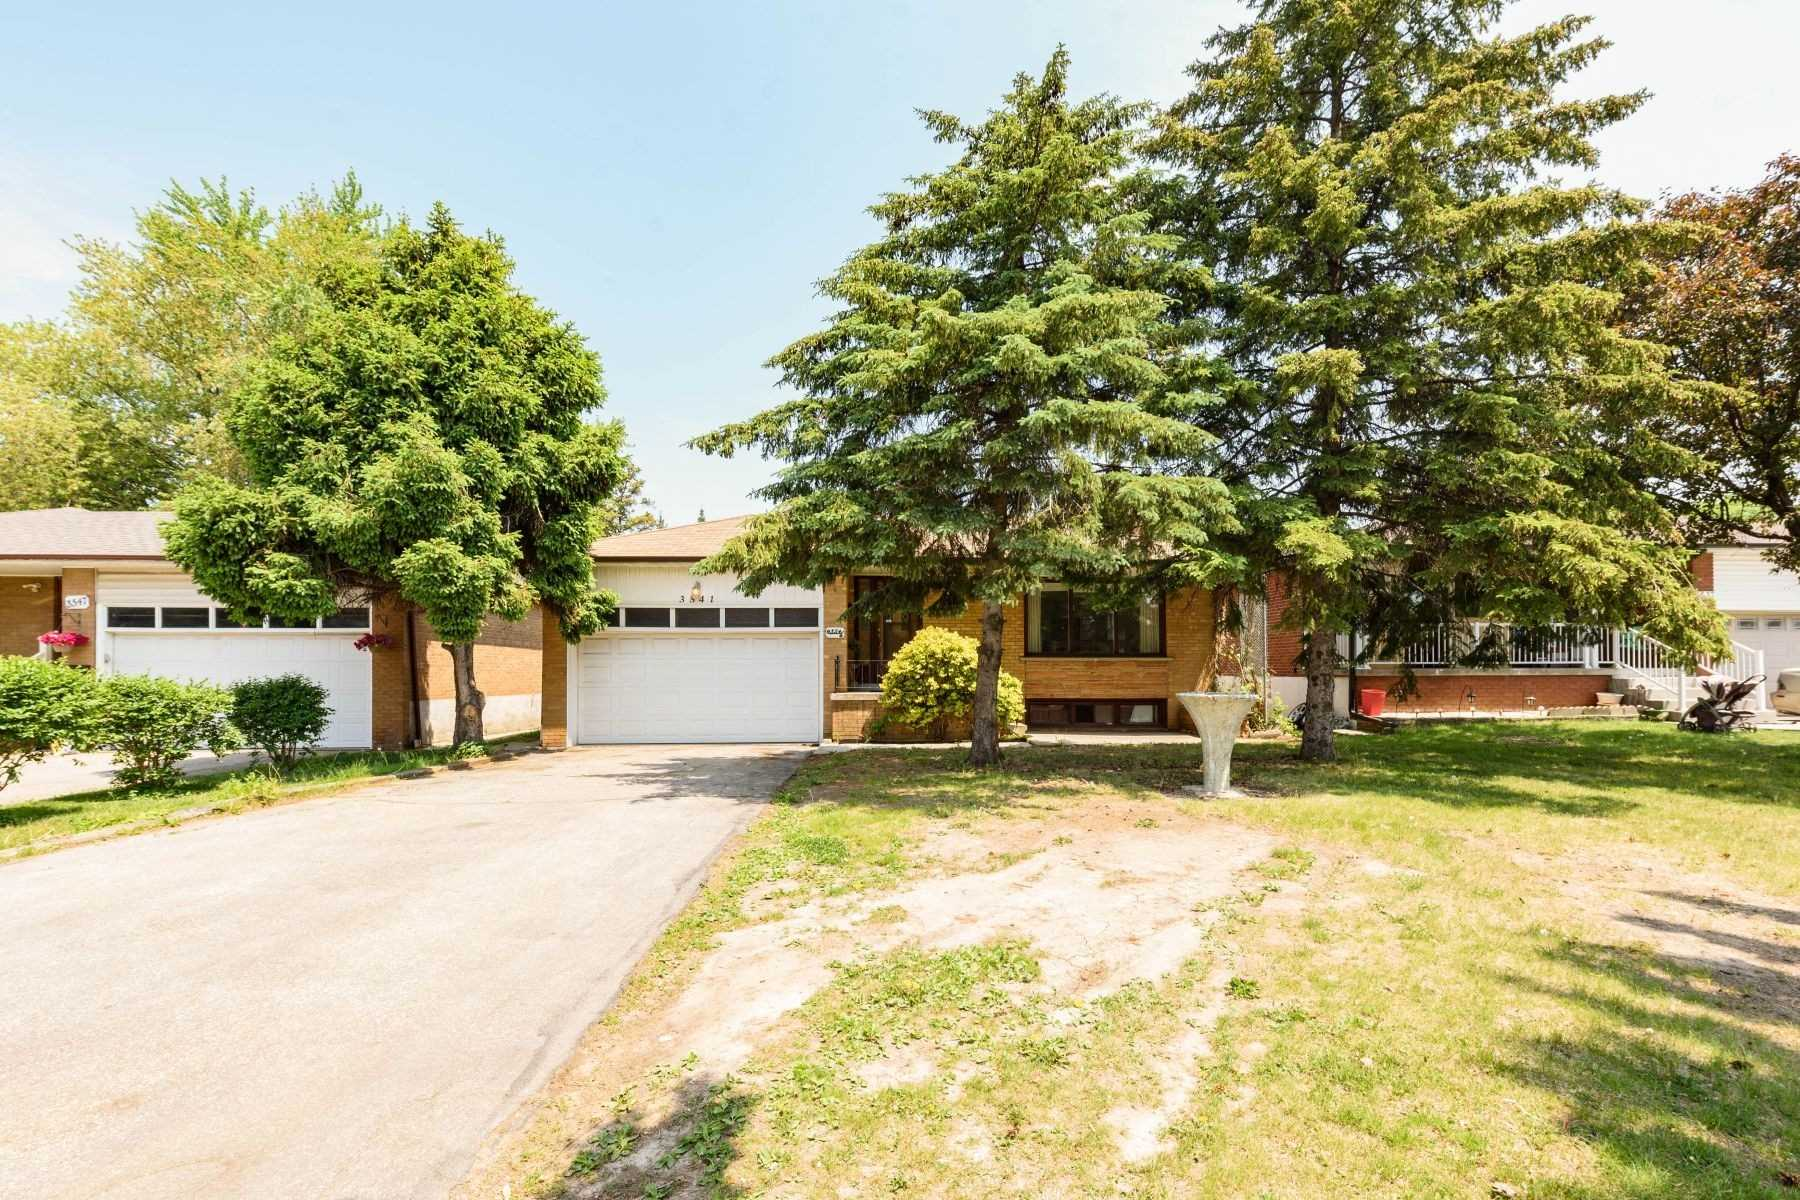 3541 Cawthra Rd, Mississauga, Ontario L5A242, 3 Bedrooms Bedrooms, 6 Rooms Rooms,2 BathroomsBathrooms,Detached,For Sale,Cawthra,W5357812